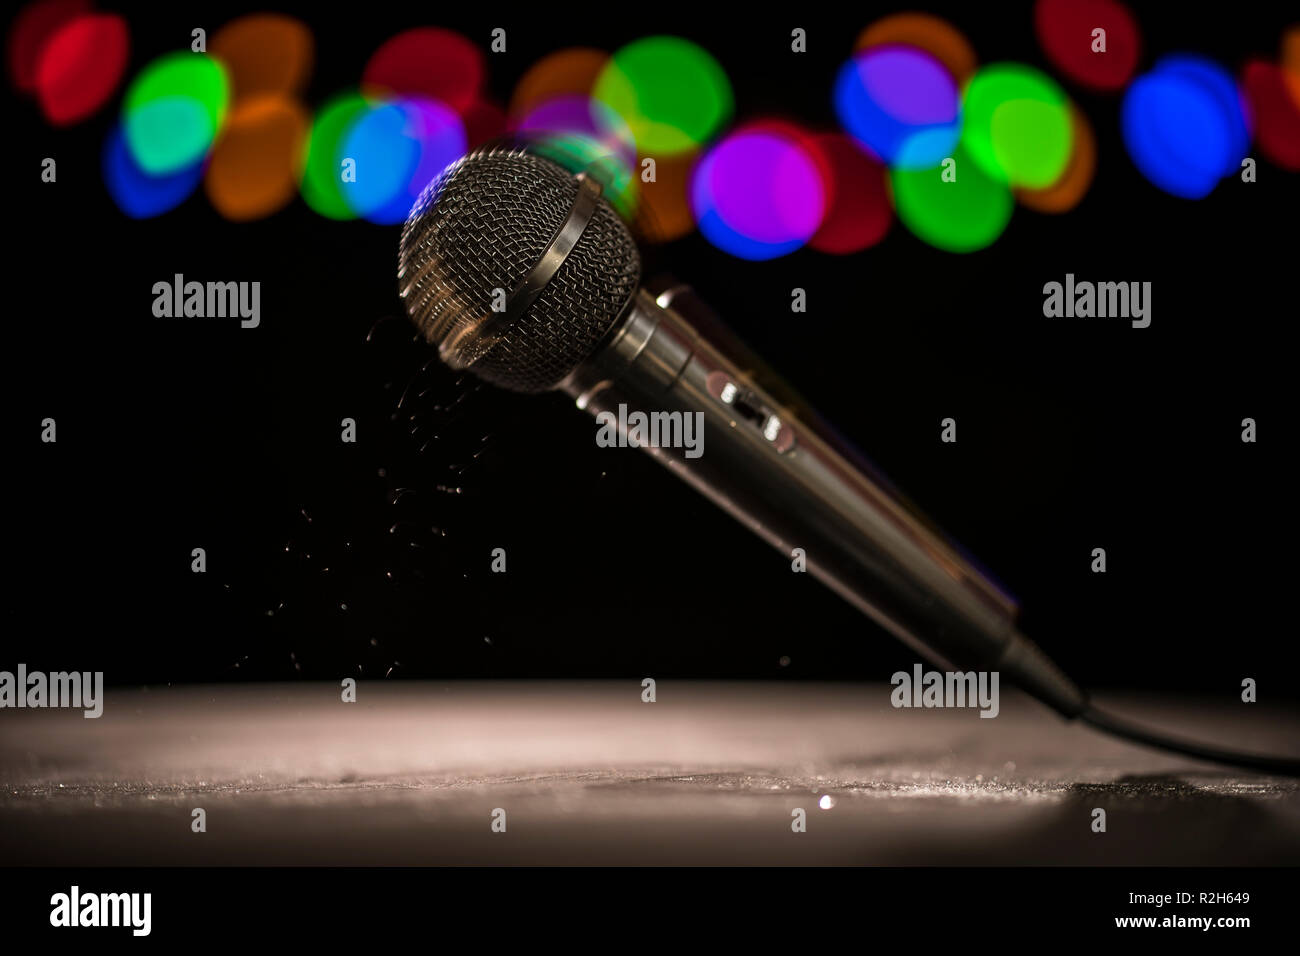 Mic Drop! A microphone falling onto a stage floor. - Stock Image